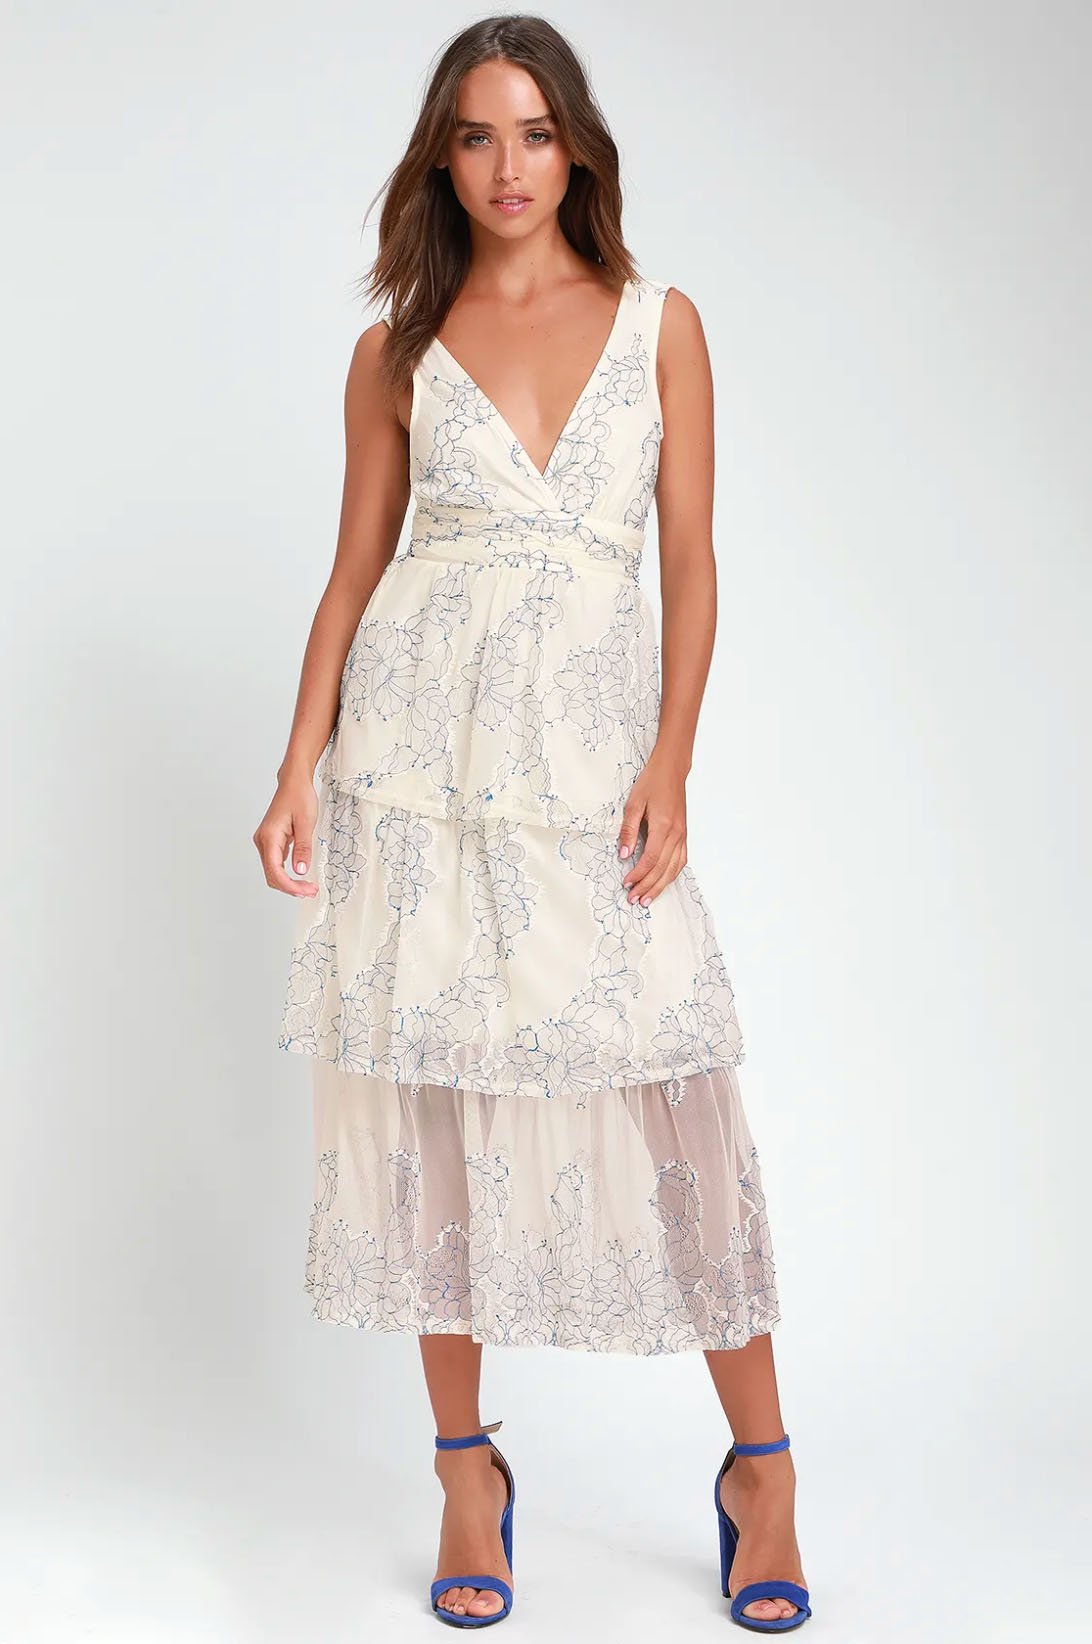 Lulu's VIVIANA BLUE AND WHITE EMBROIDERED LACE MIDI DRESS